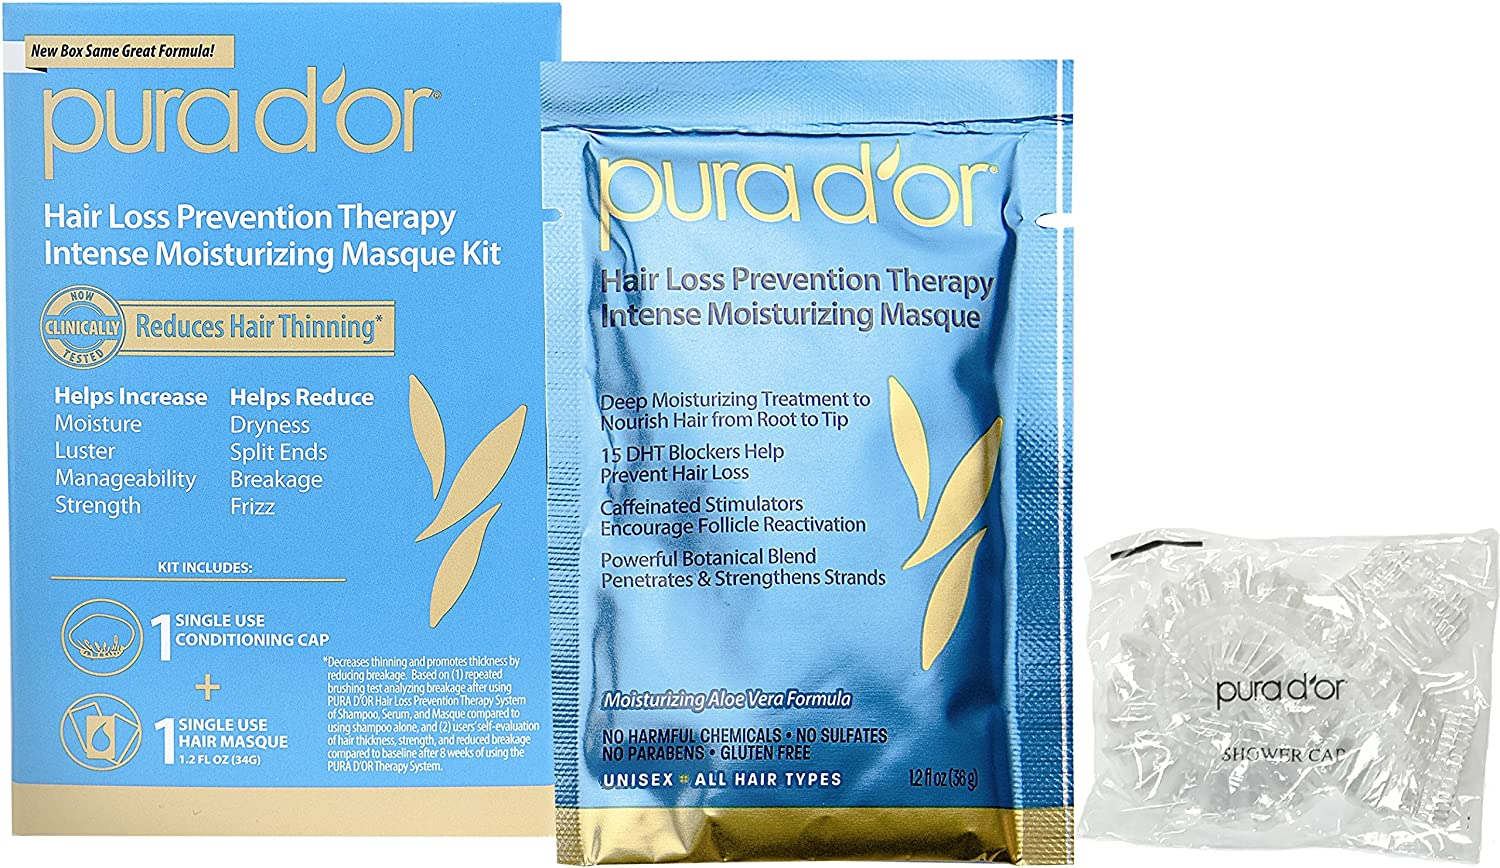 PURA D'OR Hair Thinning Therapy Intense Moisturizing Masque, 8 Packets, Deep Hydrating Mask Treatment, Infused with Natural & Organic Ingredients, For All Hair Types, Men & Women (Packaging may vary) 851615006181